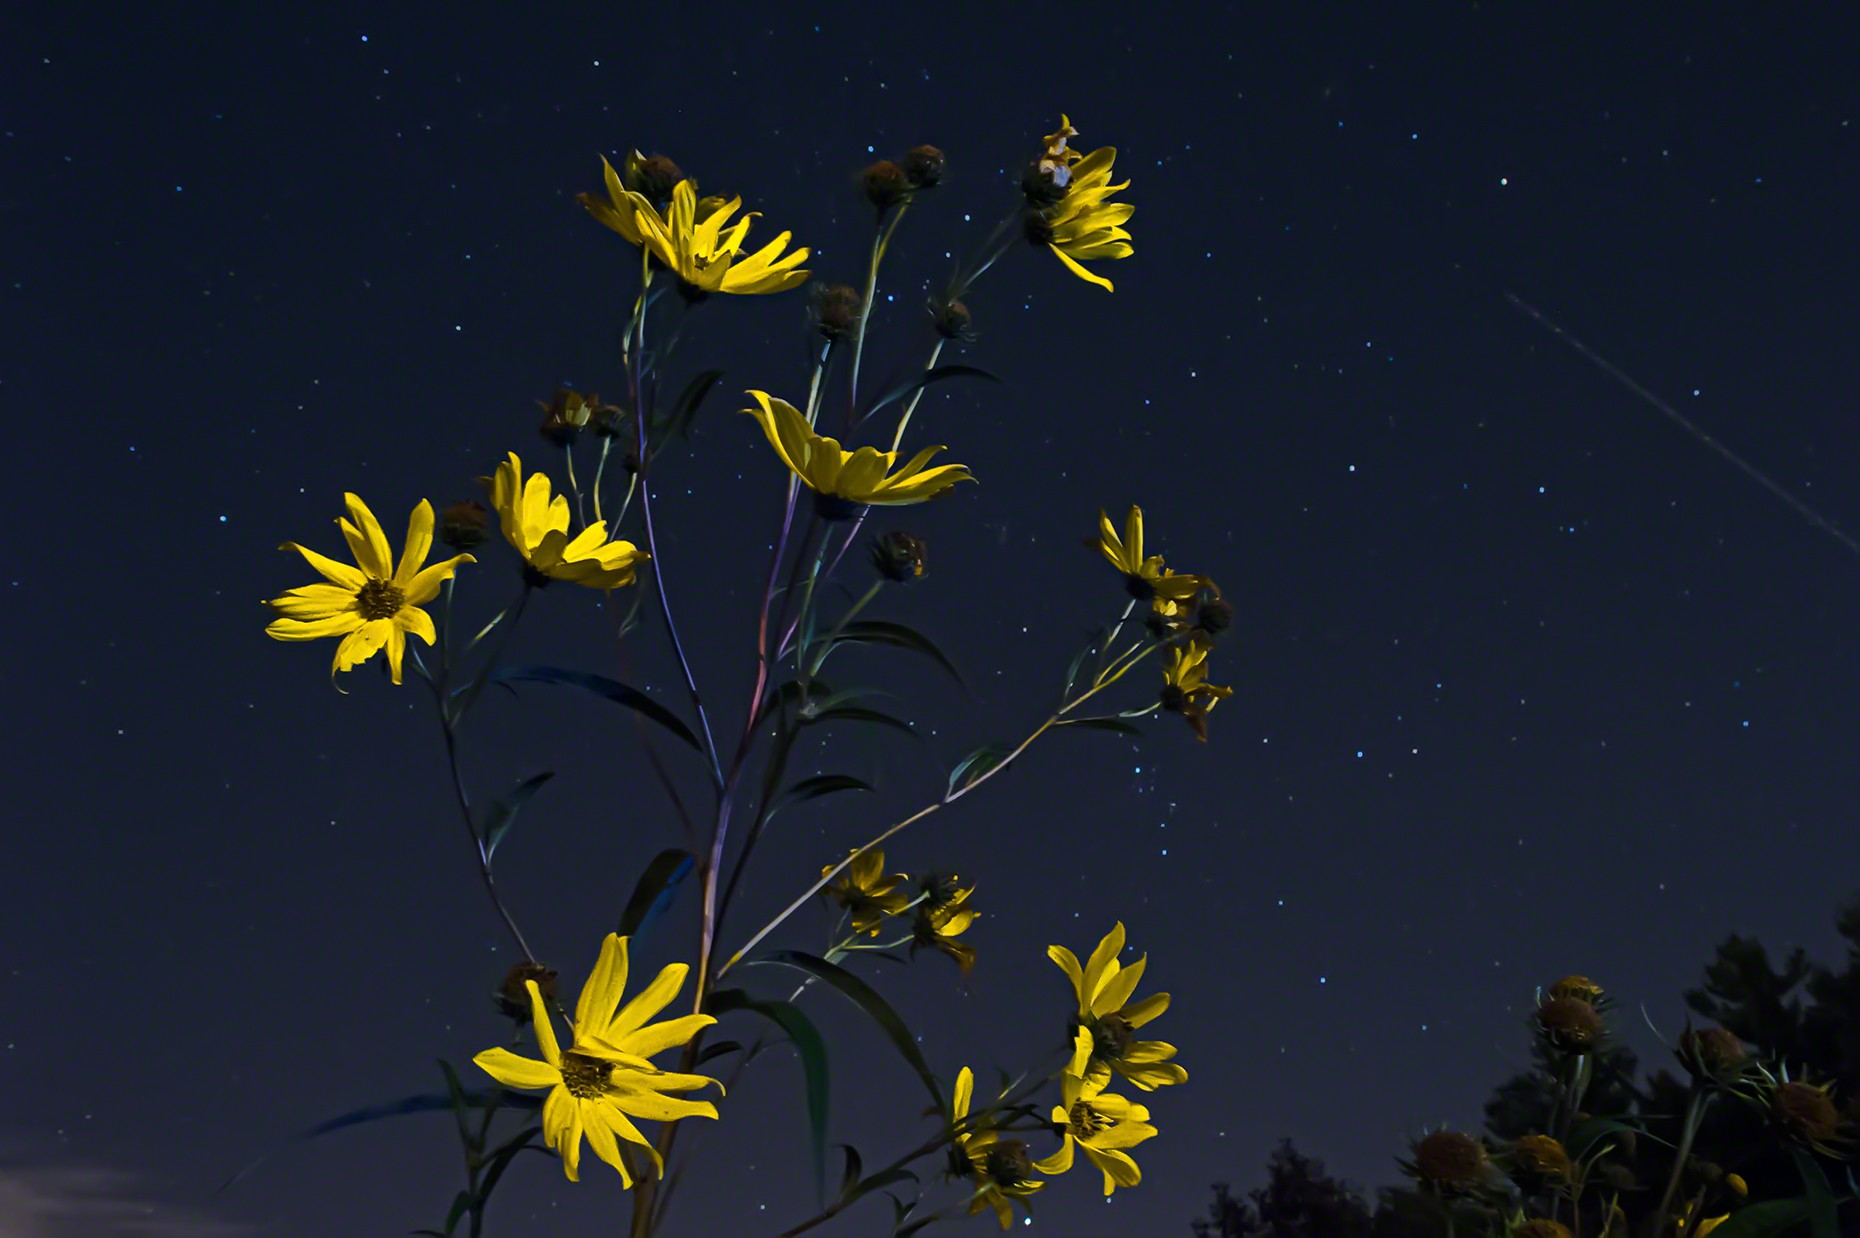 FritzImages | Travel and Outdoor Digital Images | image name = FIFP 20140923 0020 NY Nightpainting Troy Yellow opt